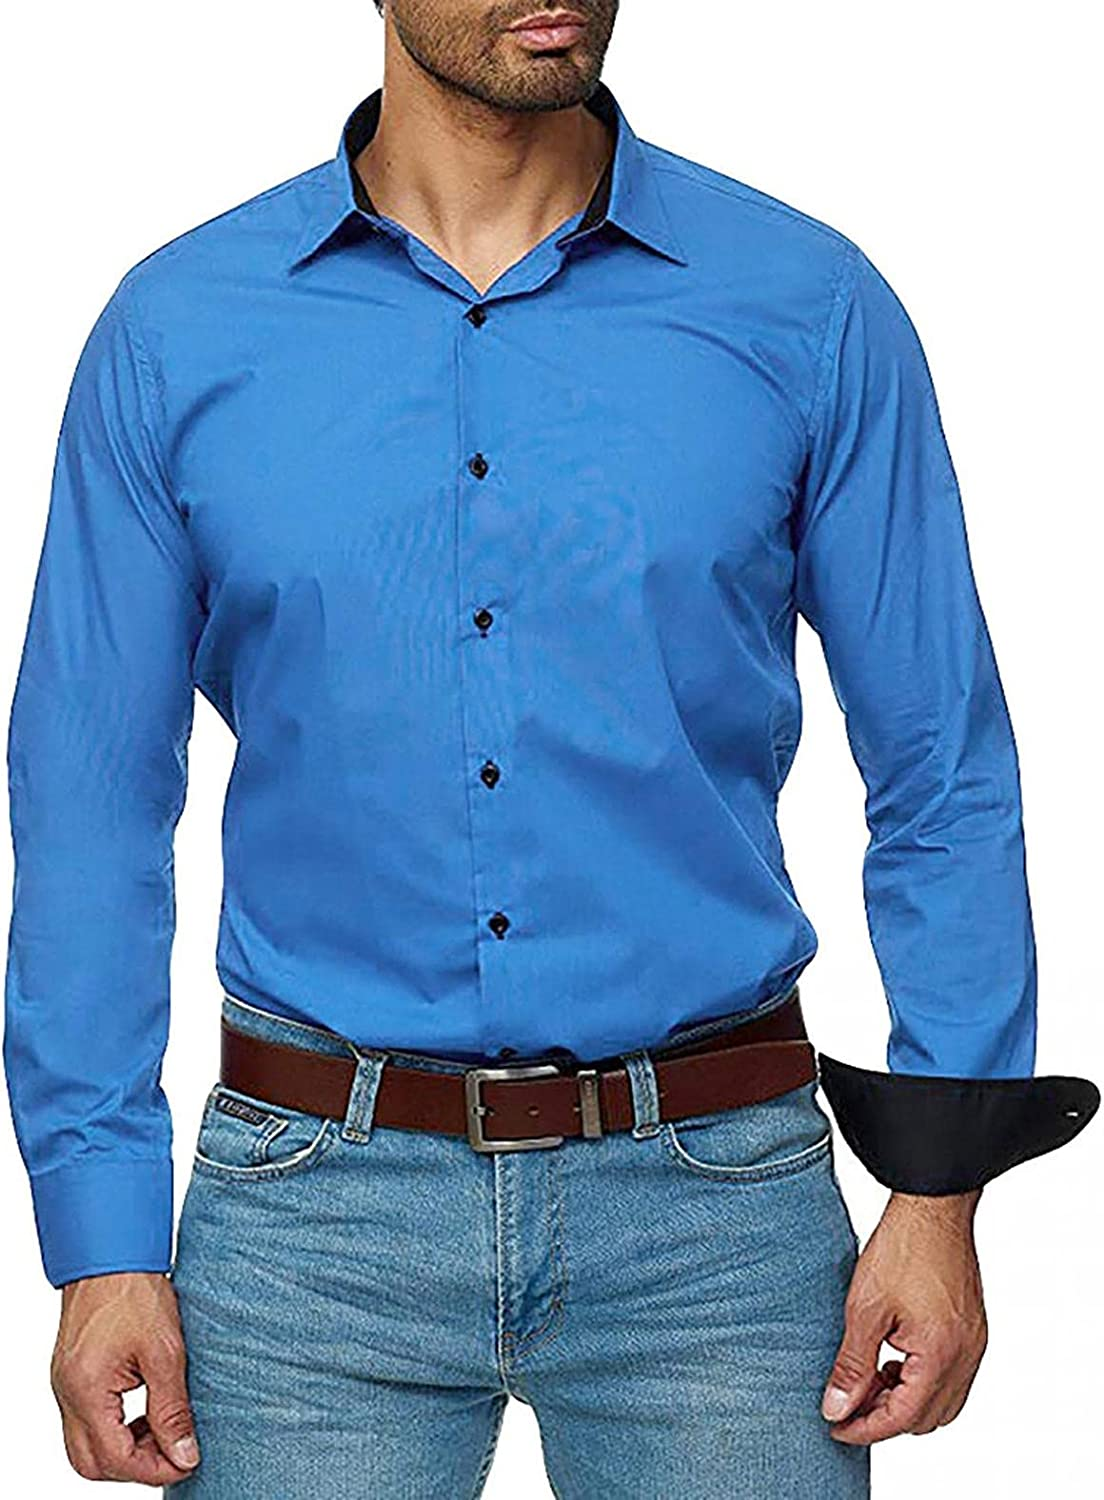 KEEYO Mens Dress Shirts Long Sleeve Muscle Fit Business Work Casual Wrinkle-Free Button Down Cotton Shirts Tops S-3XL